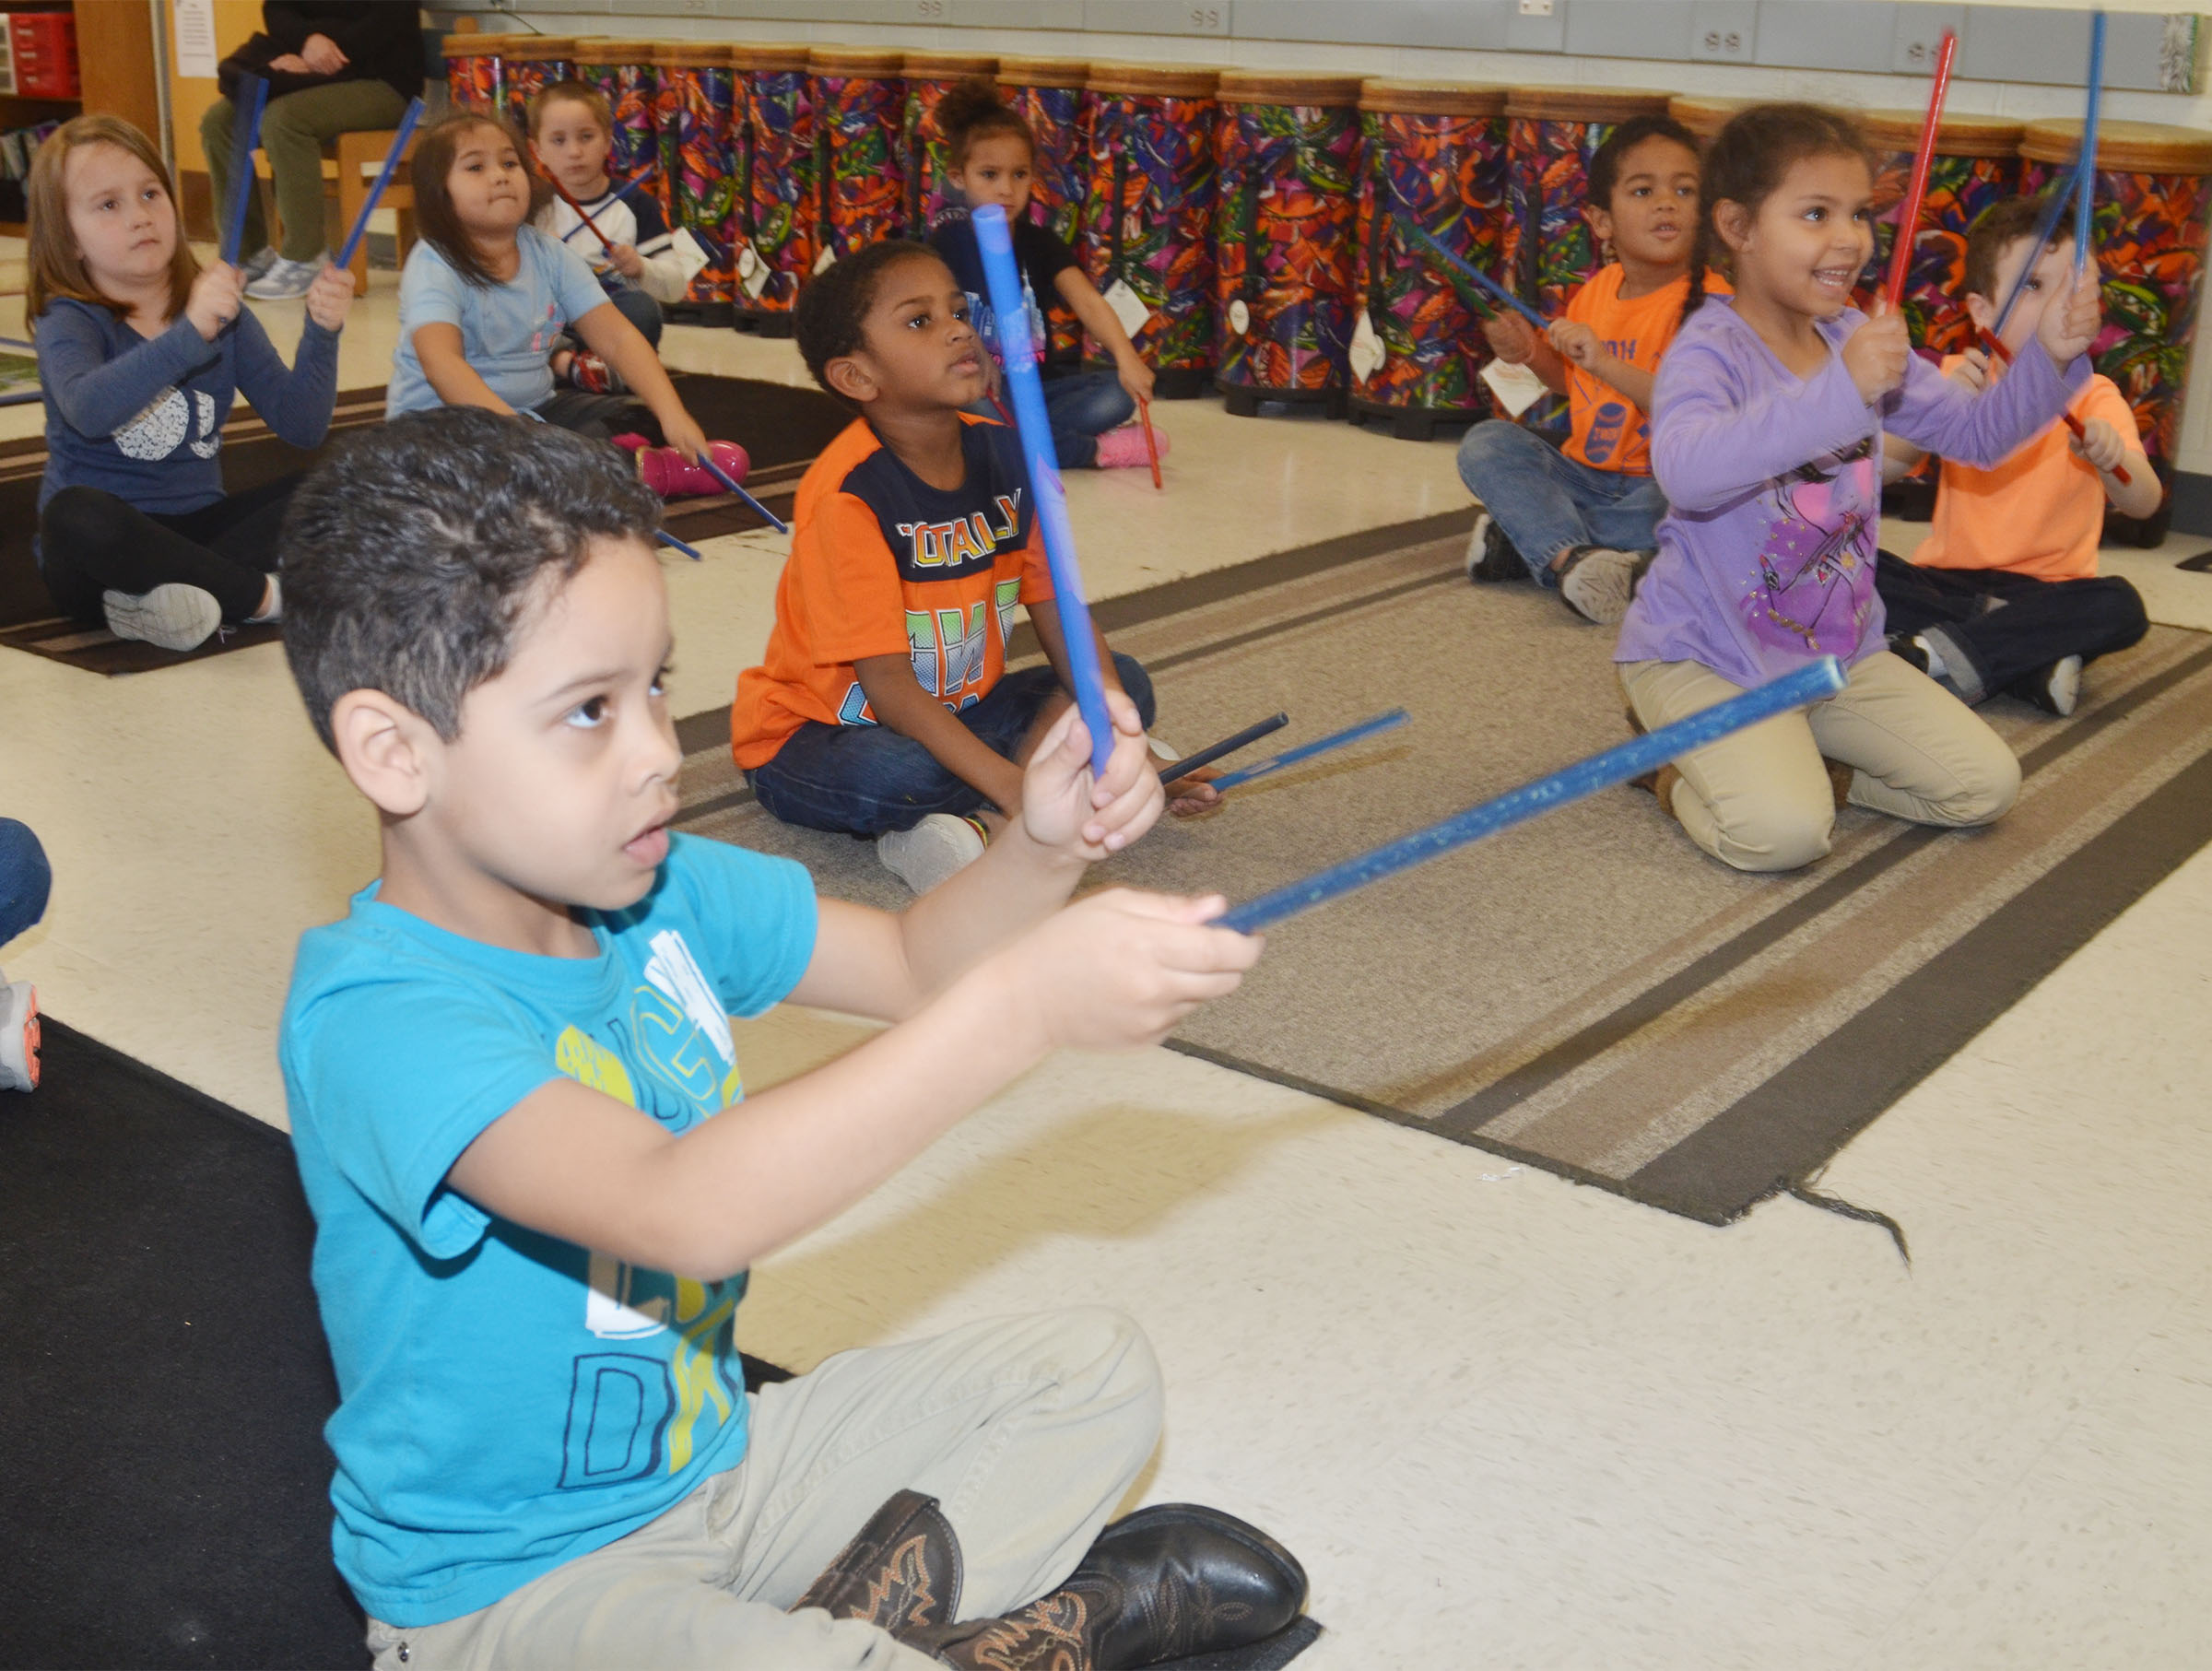 CES kindergartener Demarcus Noyola, at left, plays the rhythm sticks with his classmates.